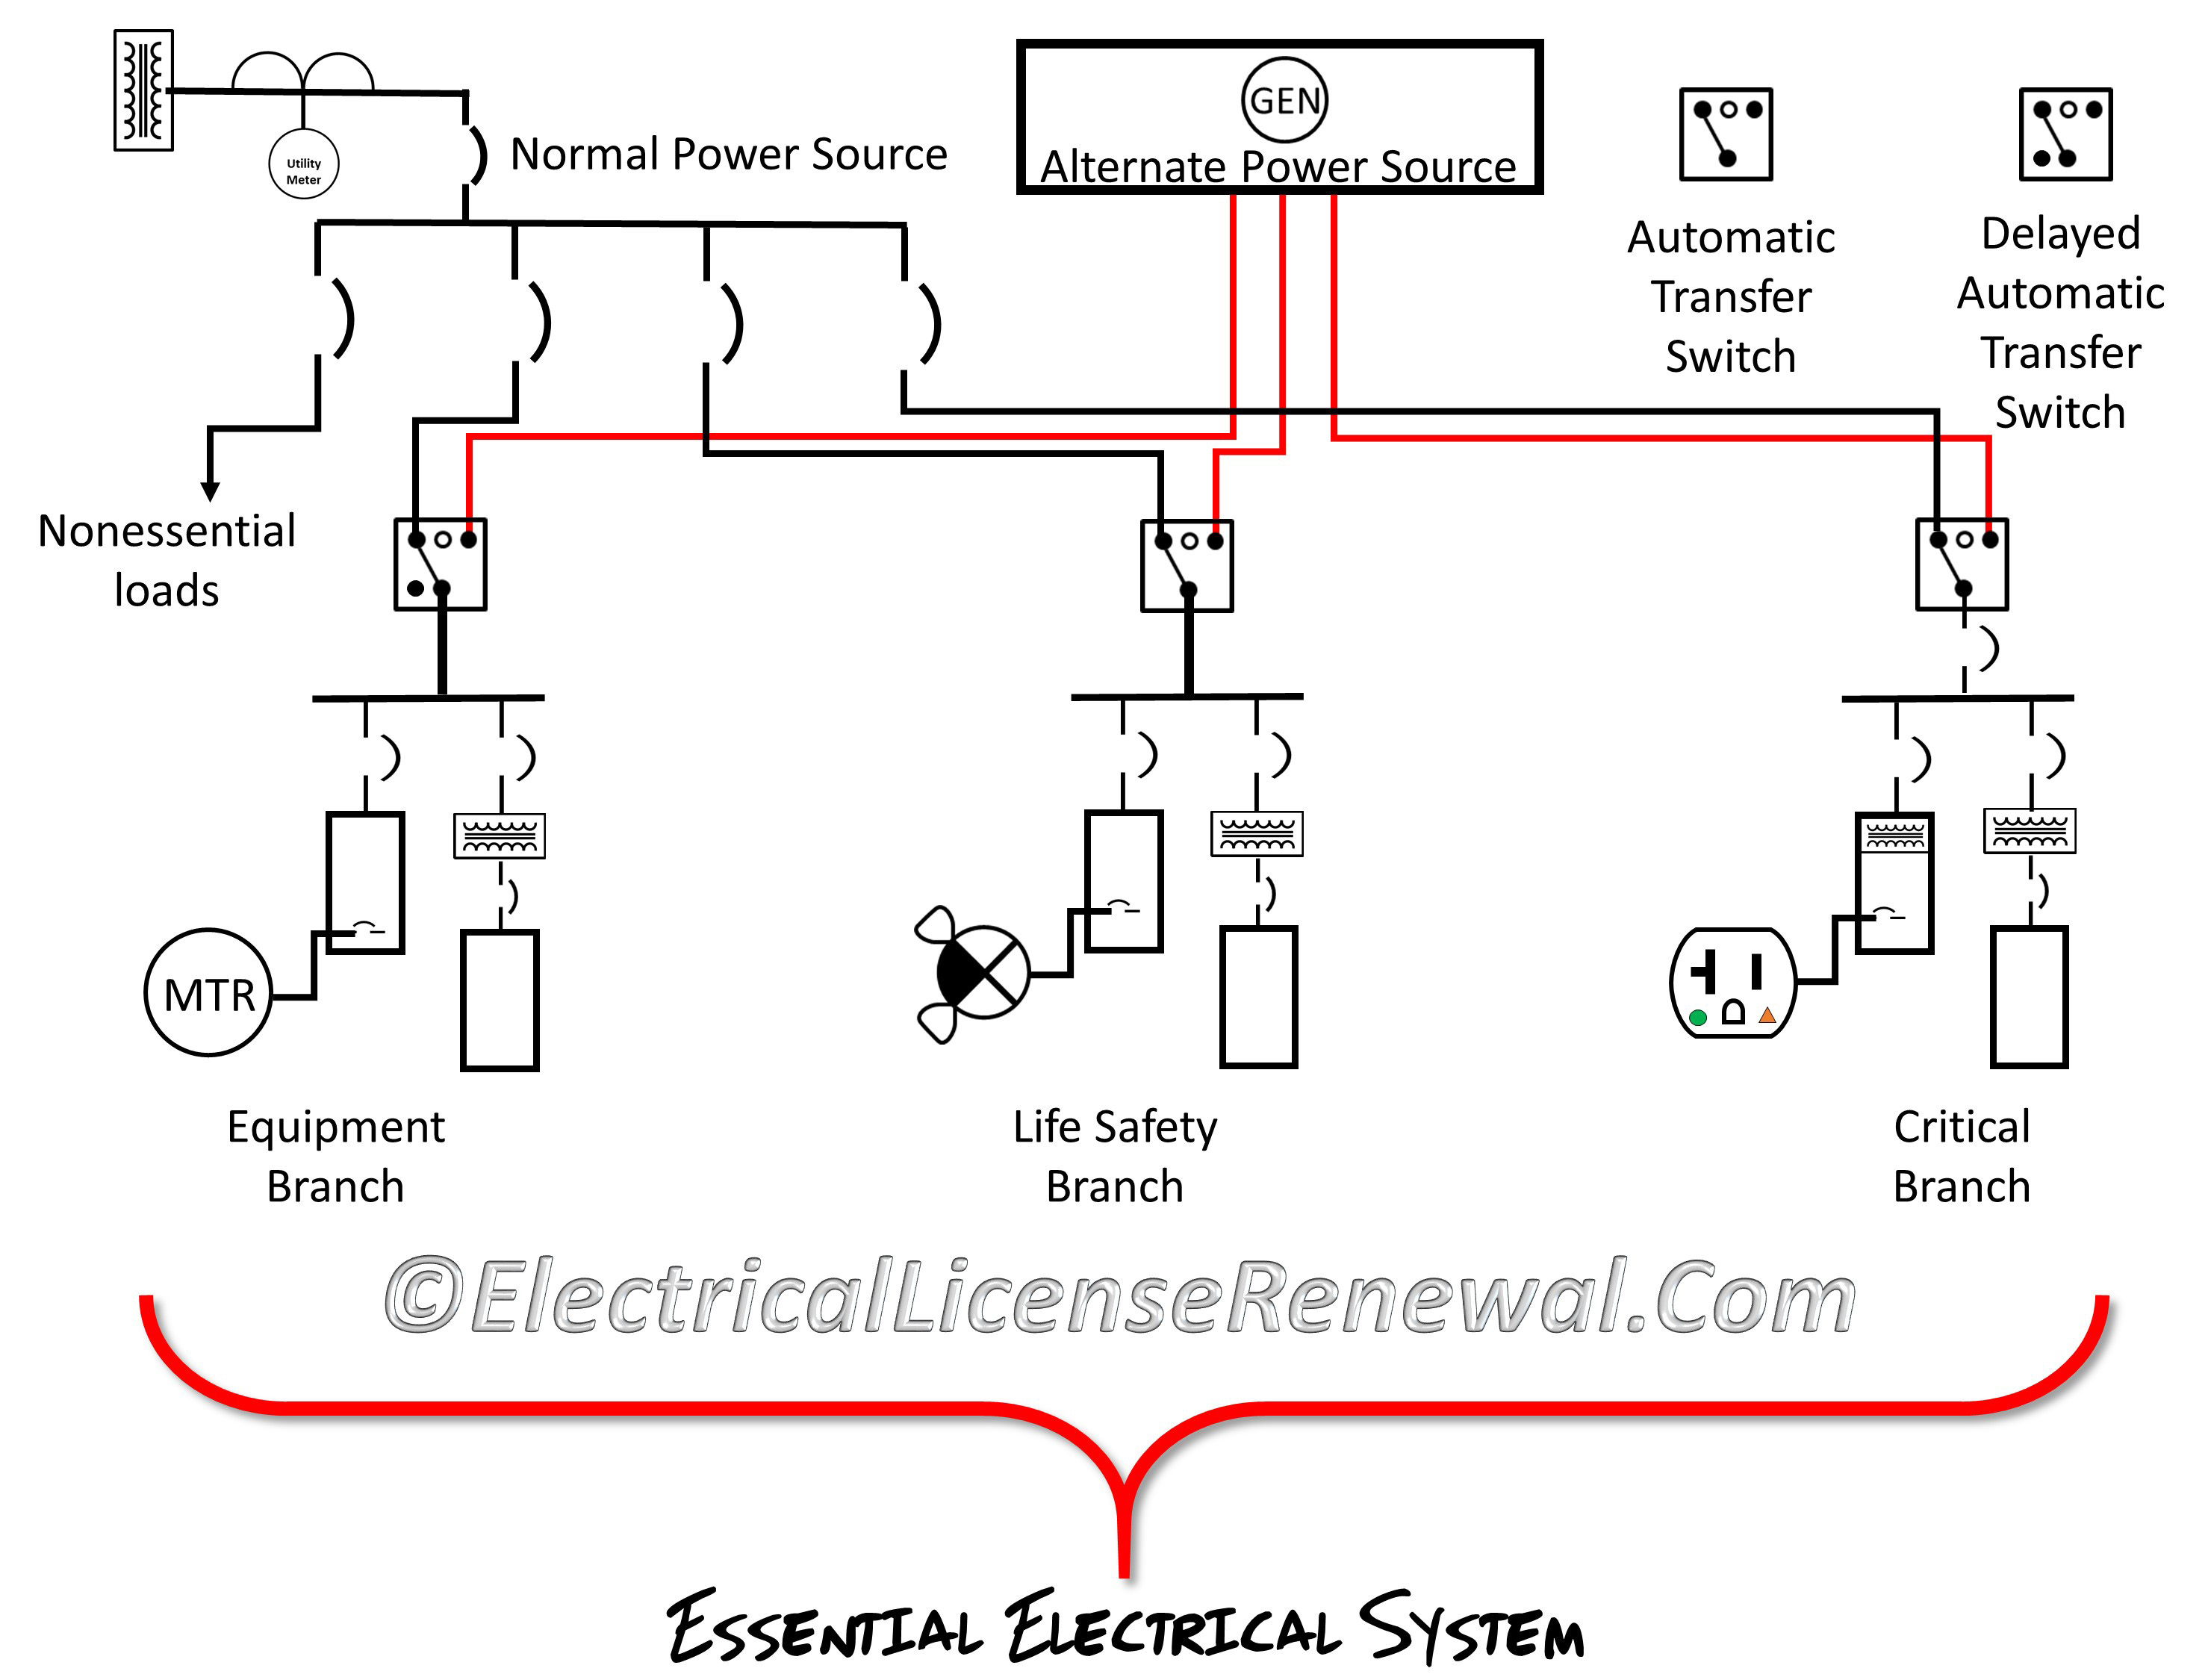 517 29 Essential Electrical Systems For Hospitals And